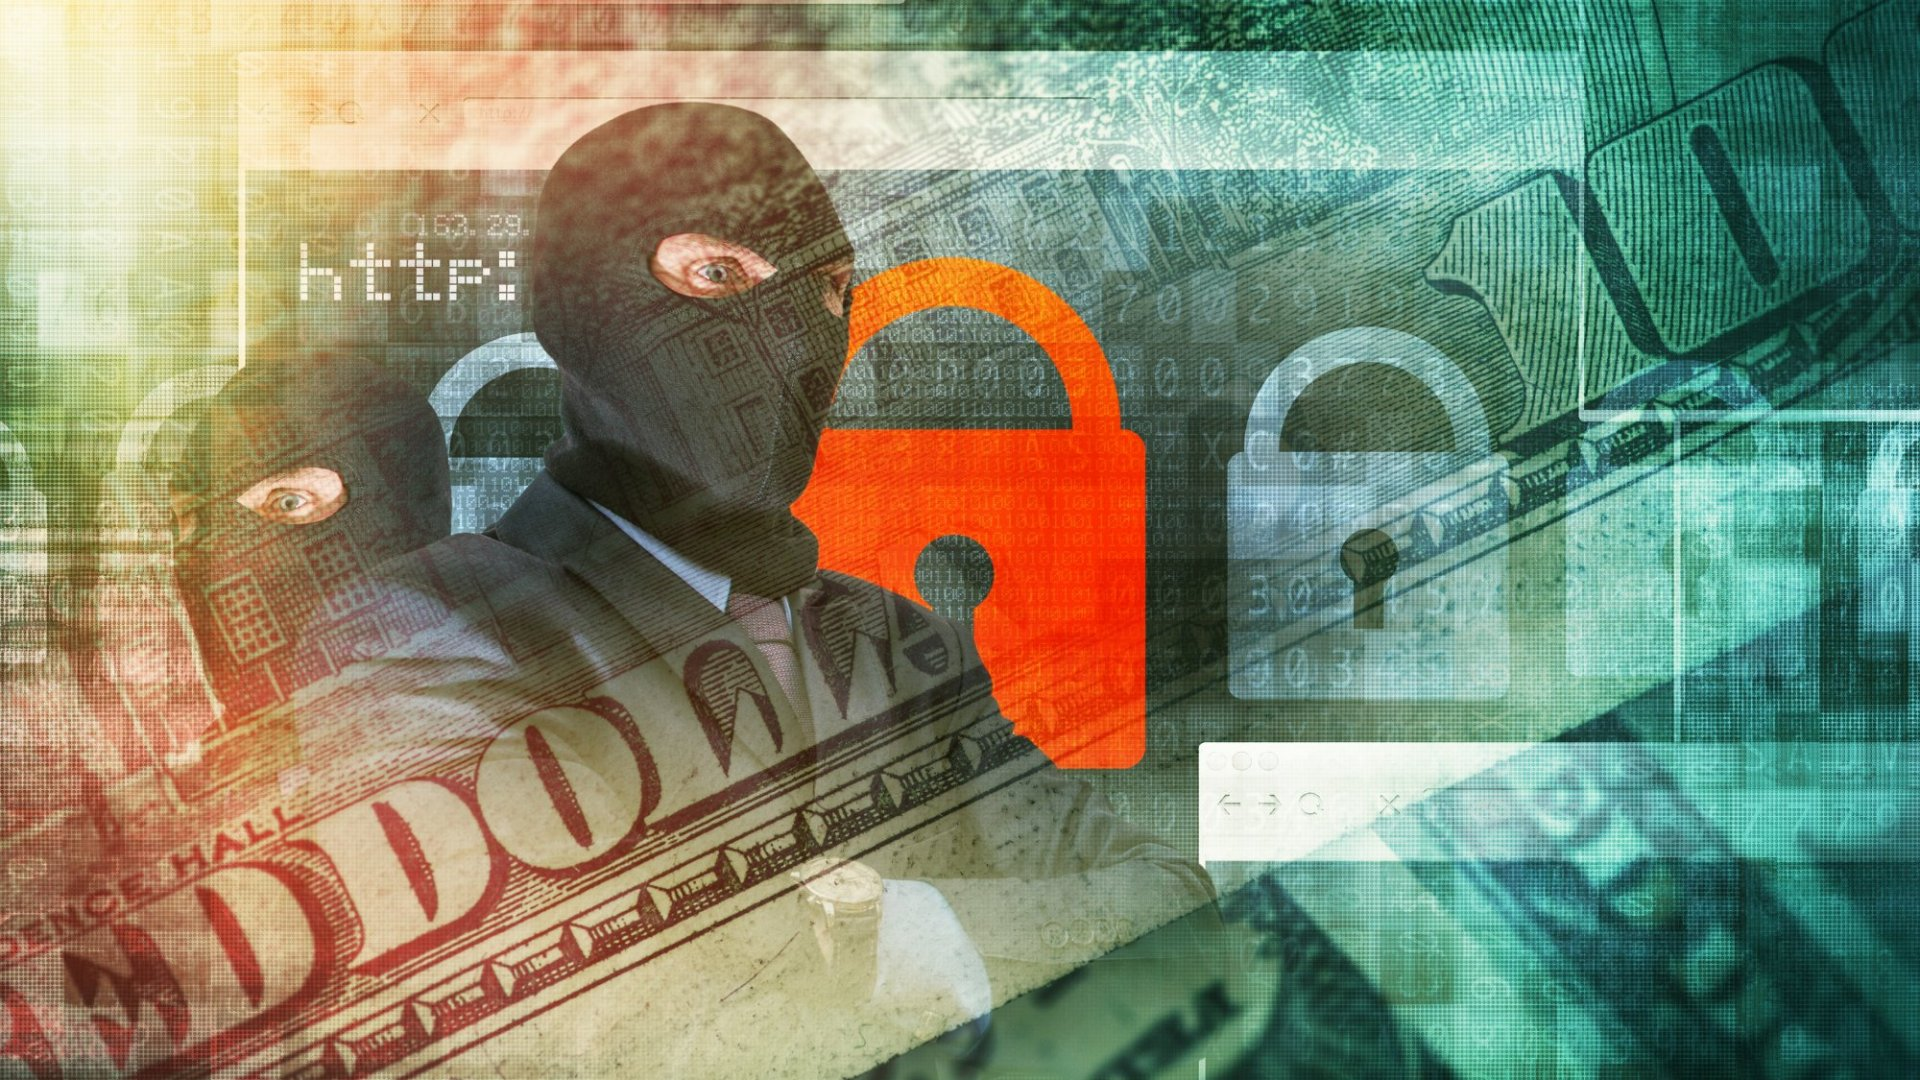 3 New Ways That Criminals Are Making Money Off Your Stolen Data